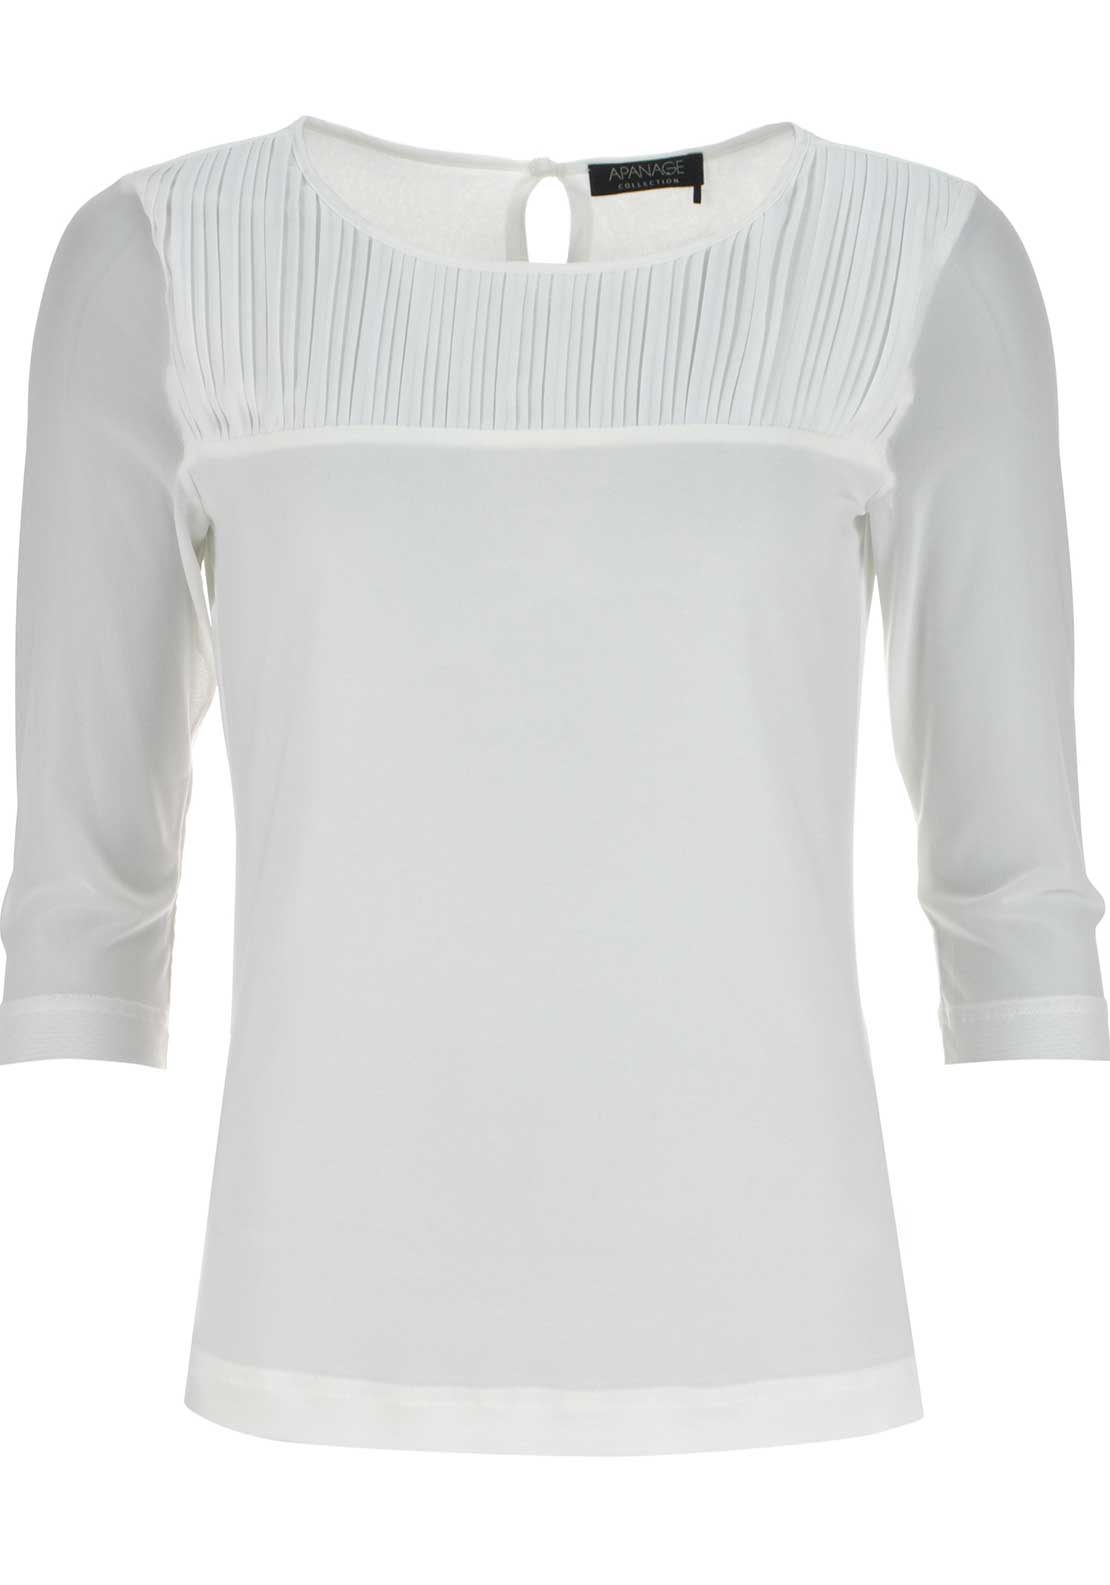 Apanage Pleated Detail Cropped Sleeve Top, Ivory